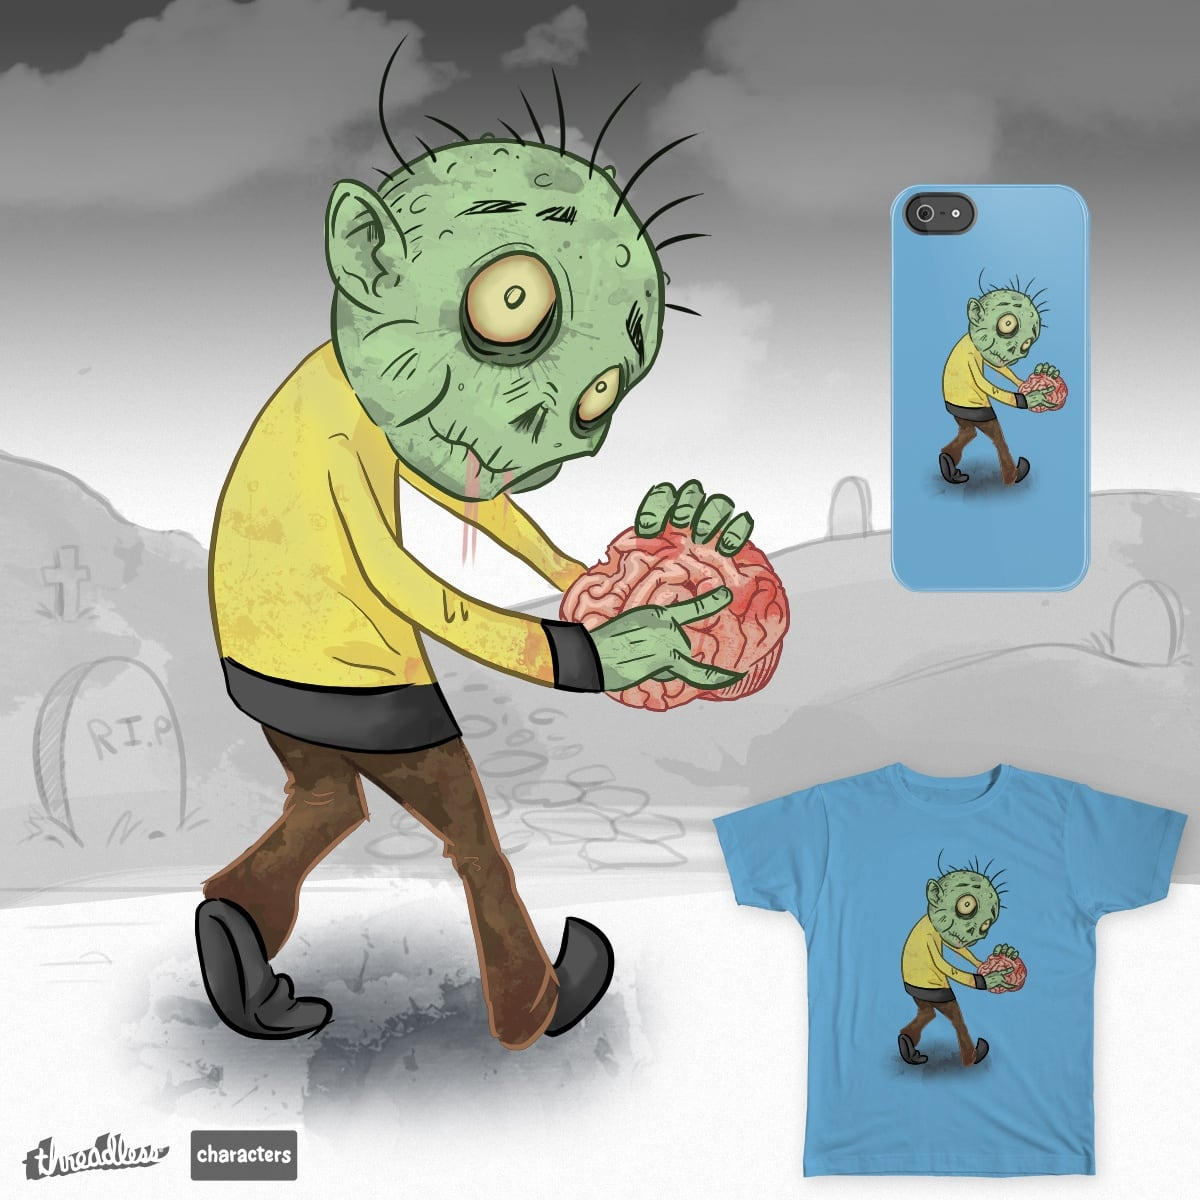 Abbot by timothy Jones on Threadless